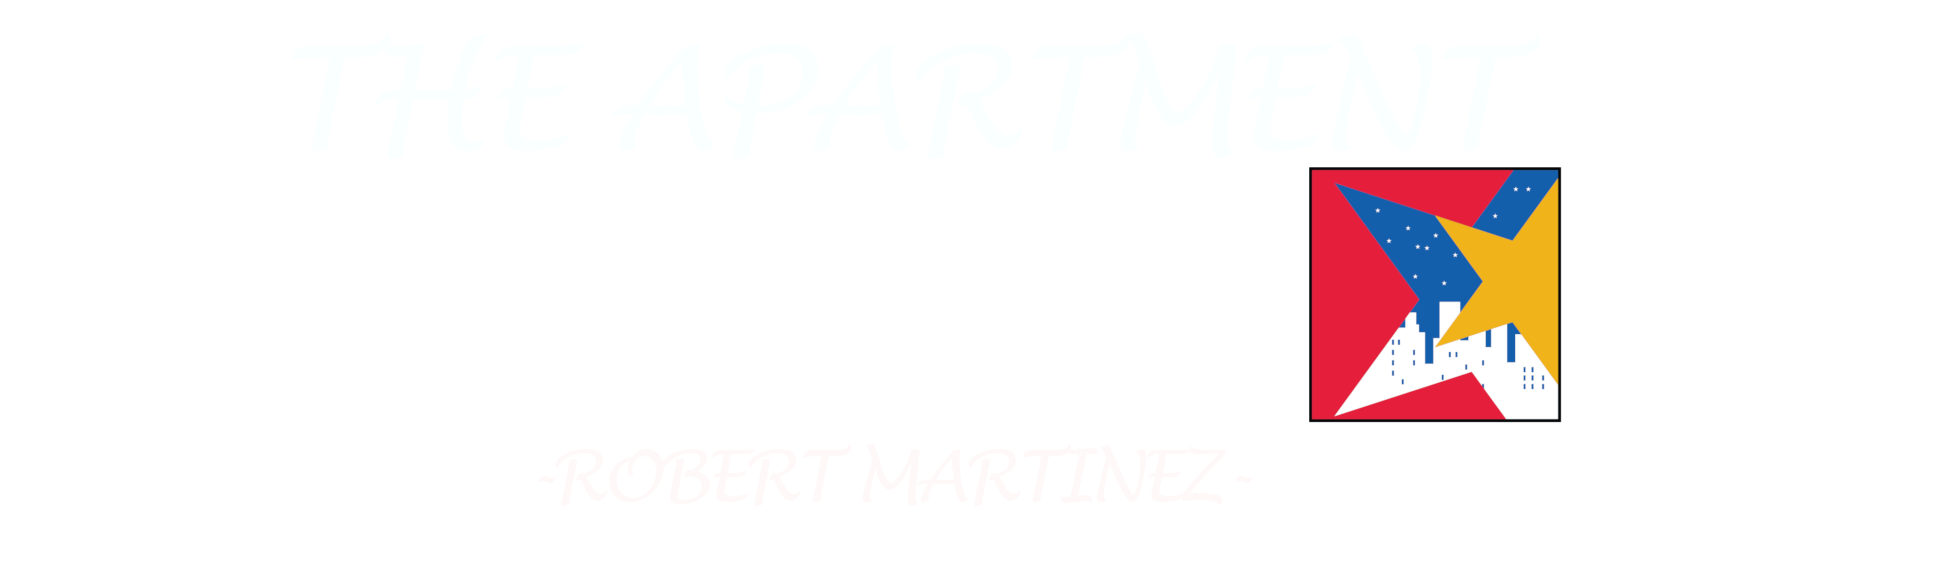 The Apartment Rockstar Logo